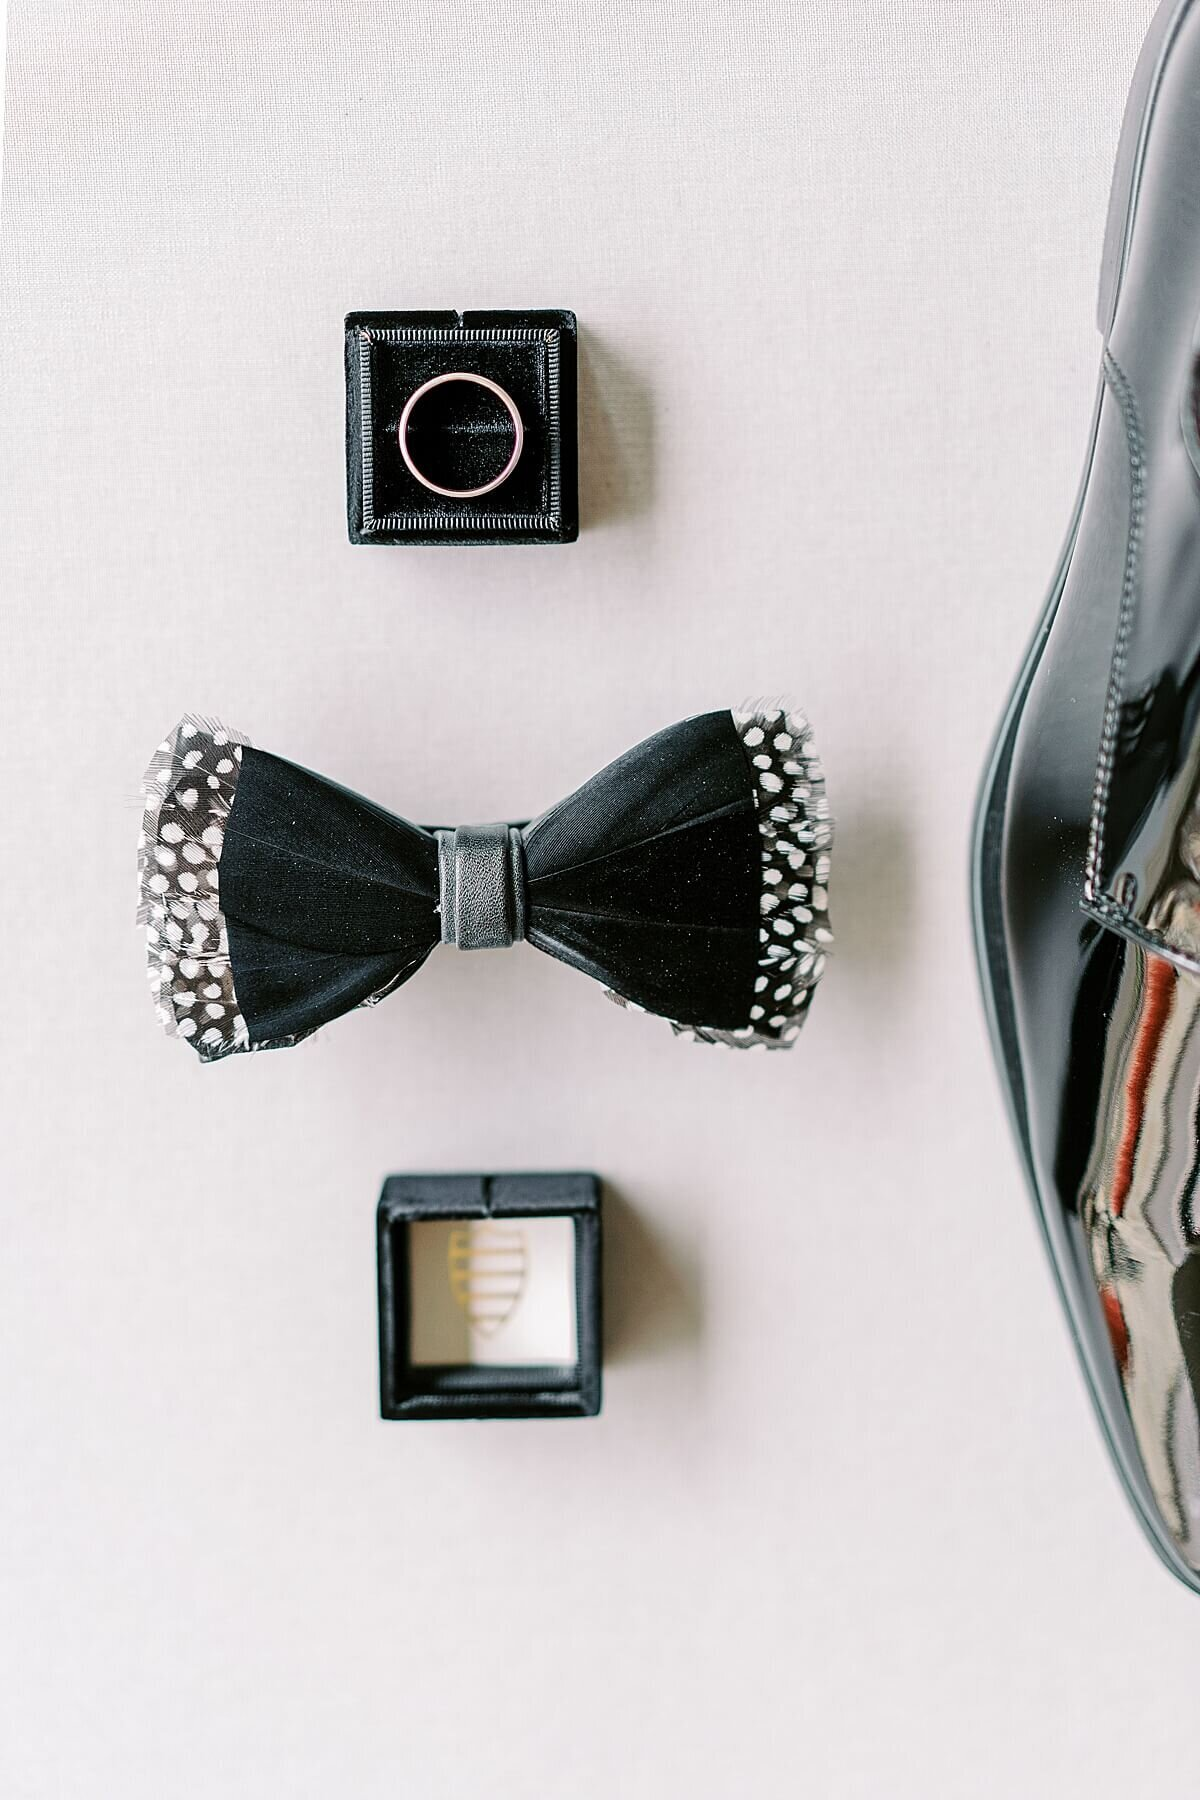 Black and White Wedding Details at The Annex Wedding Venue photographed by Alicia Yarrish Photography